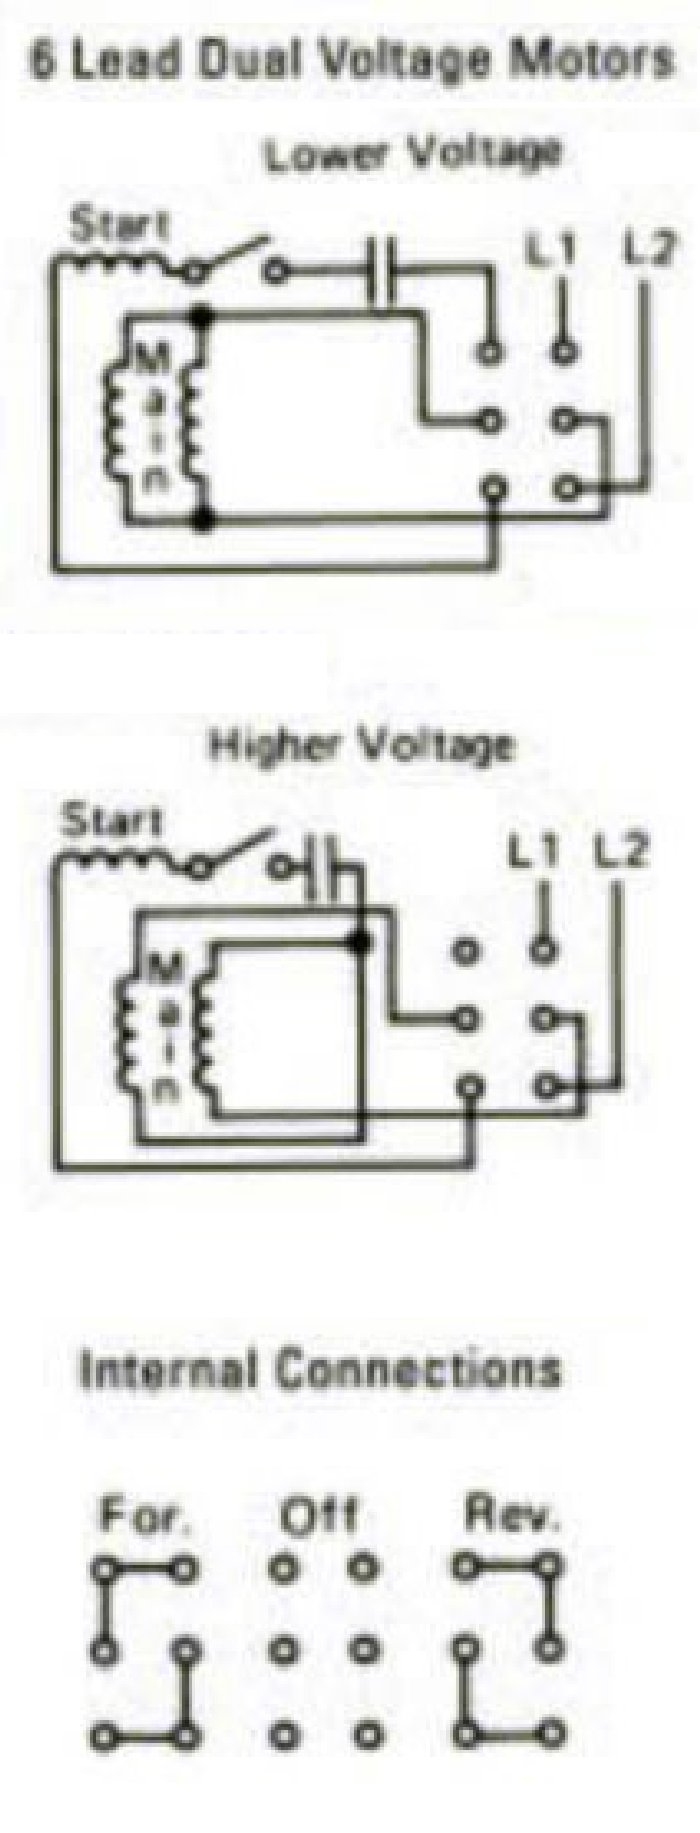 Snap Salzer Drum Switch Wiring Diagram Magnetic 3 Phase Bridgeport Switches Disconnect Elsalvadorla